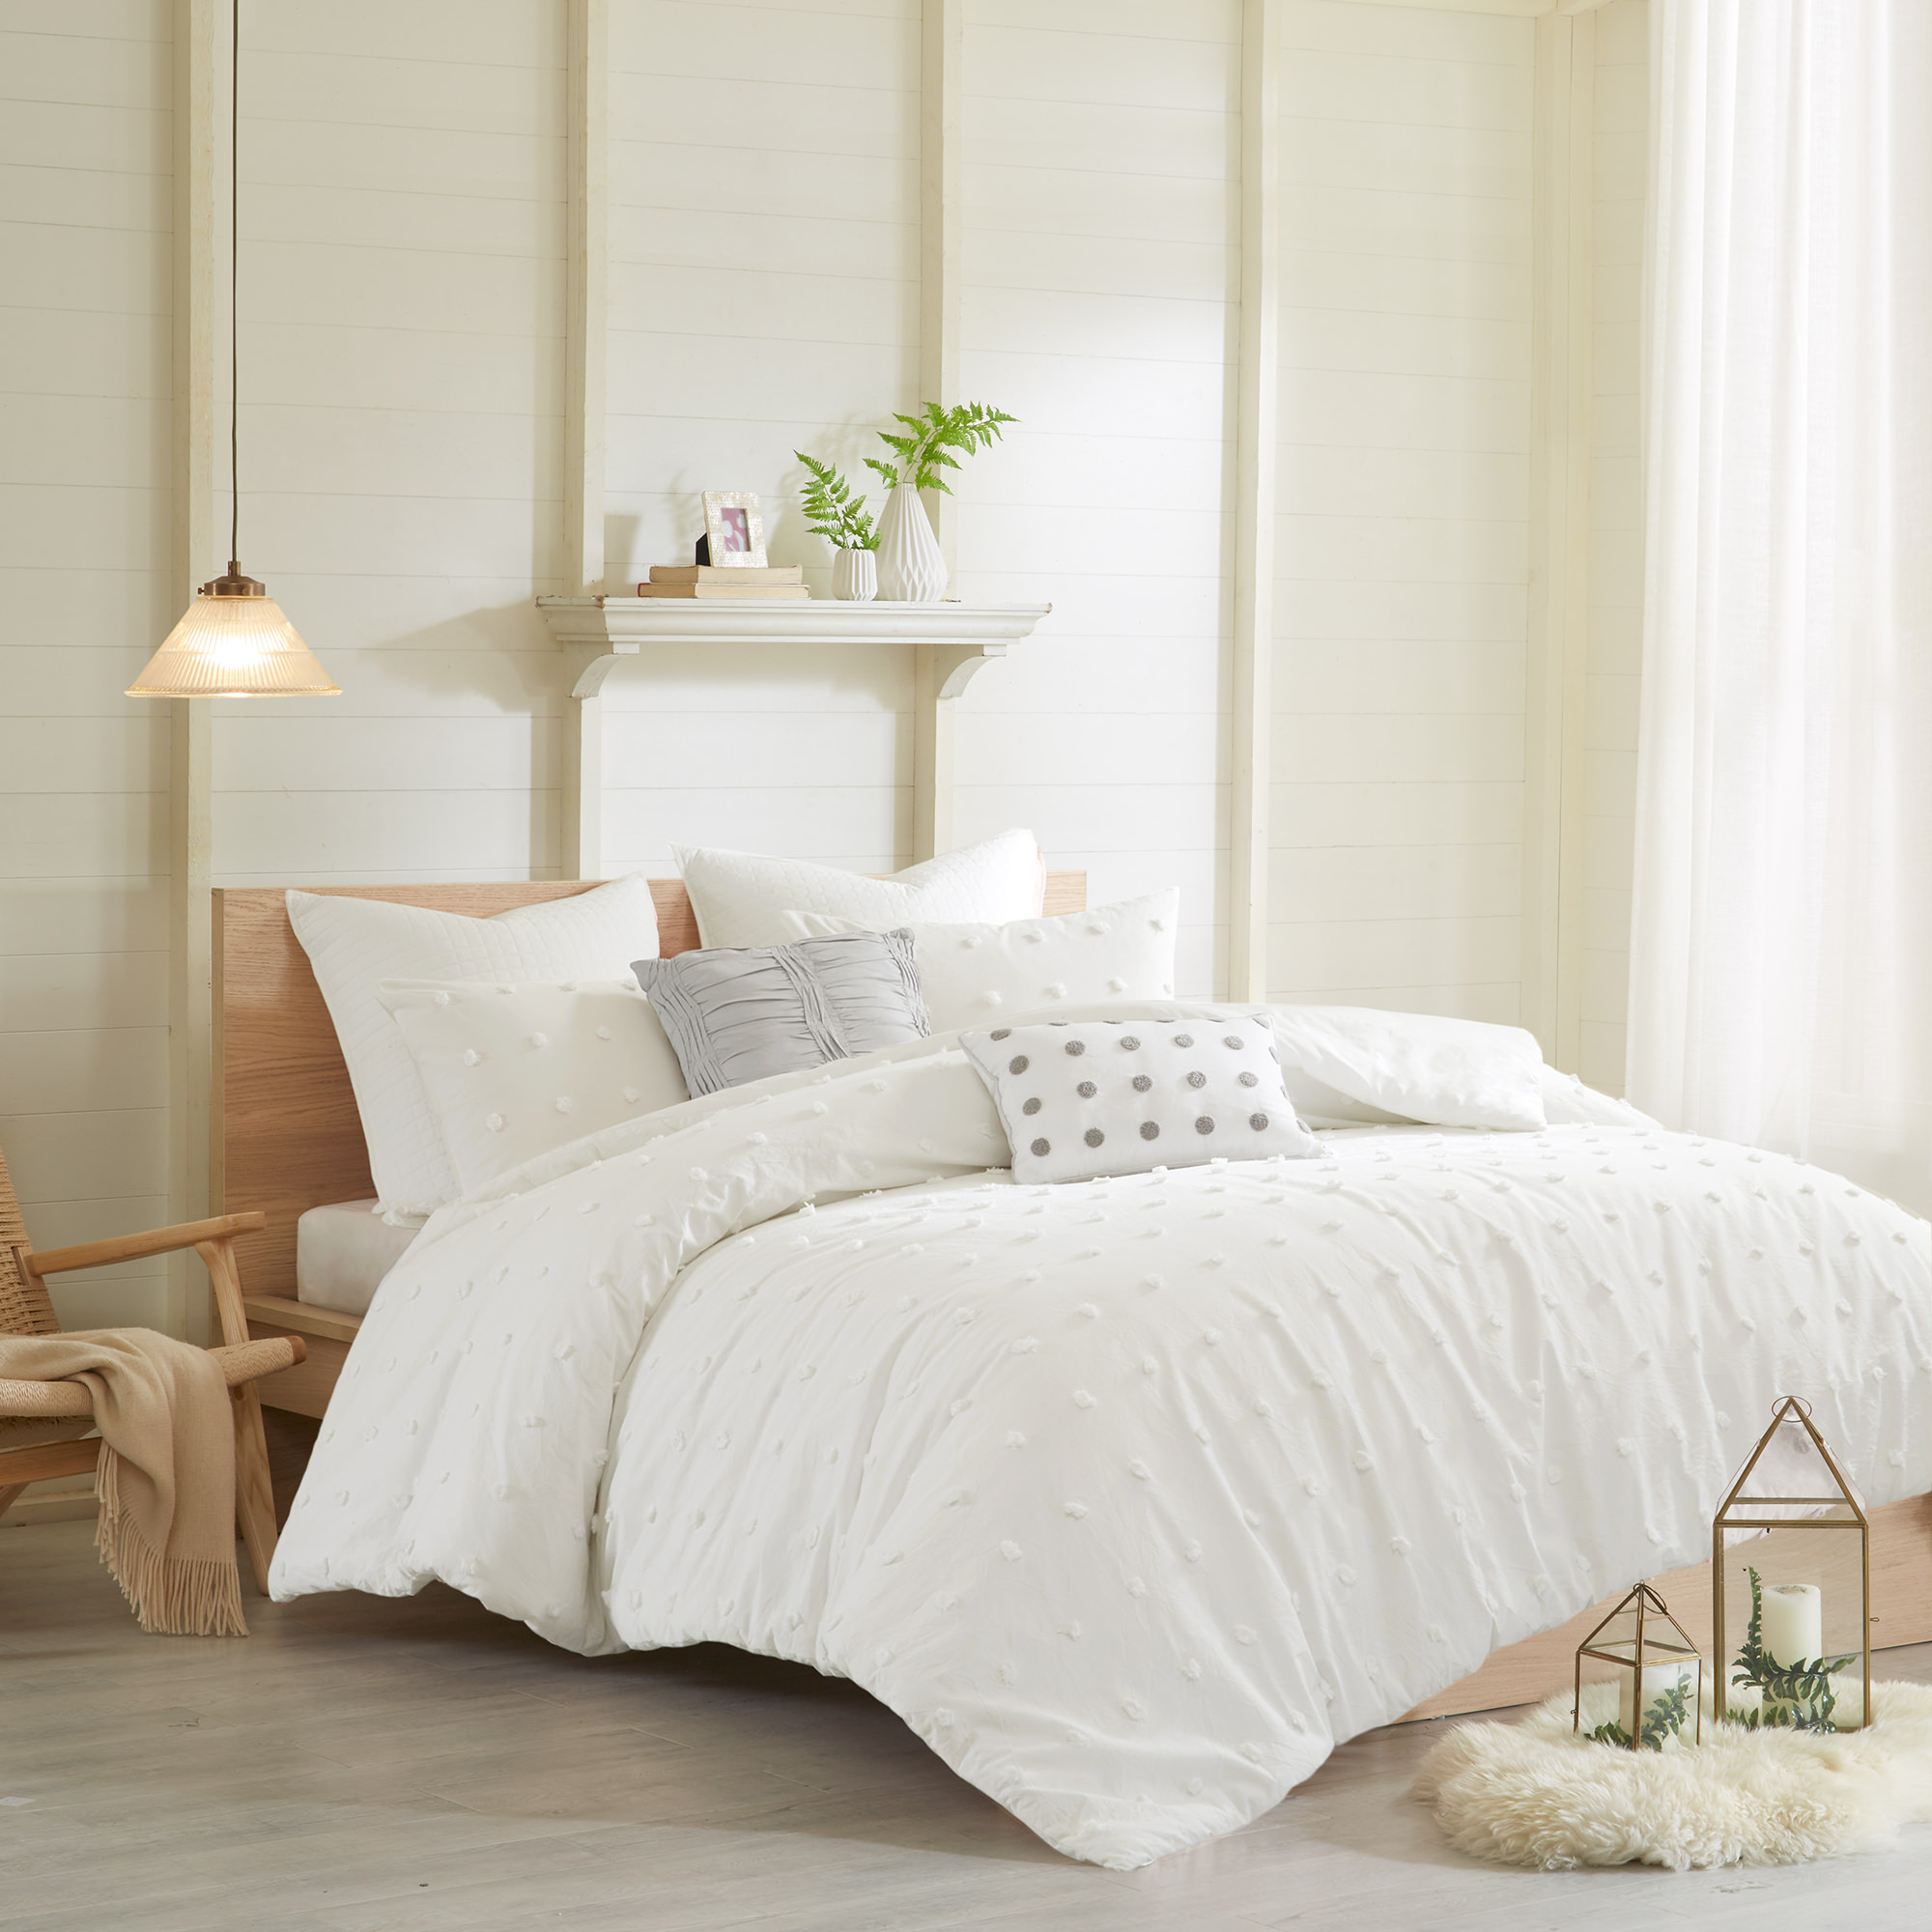 Home Essence Apartment Kay Cotton Jacquard Duvet Cover Set, Full/Queen Ivory White